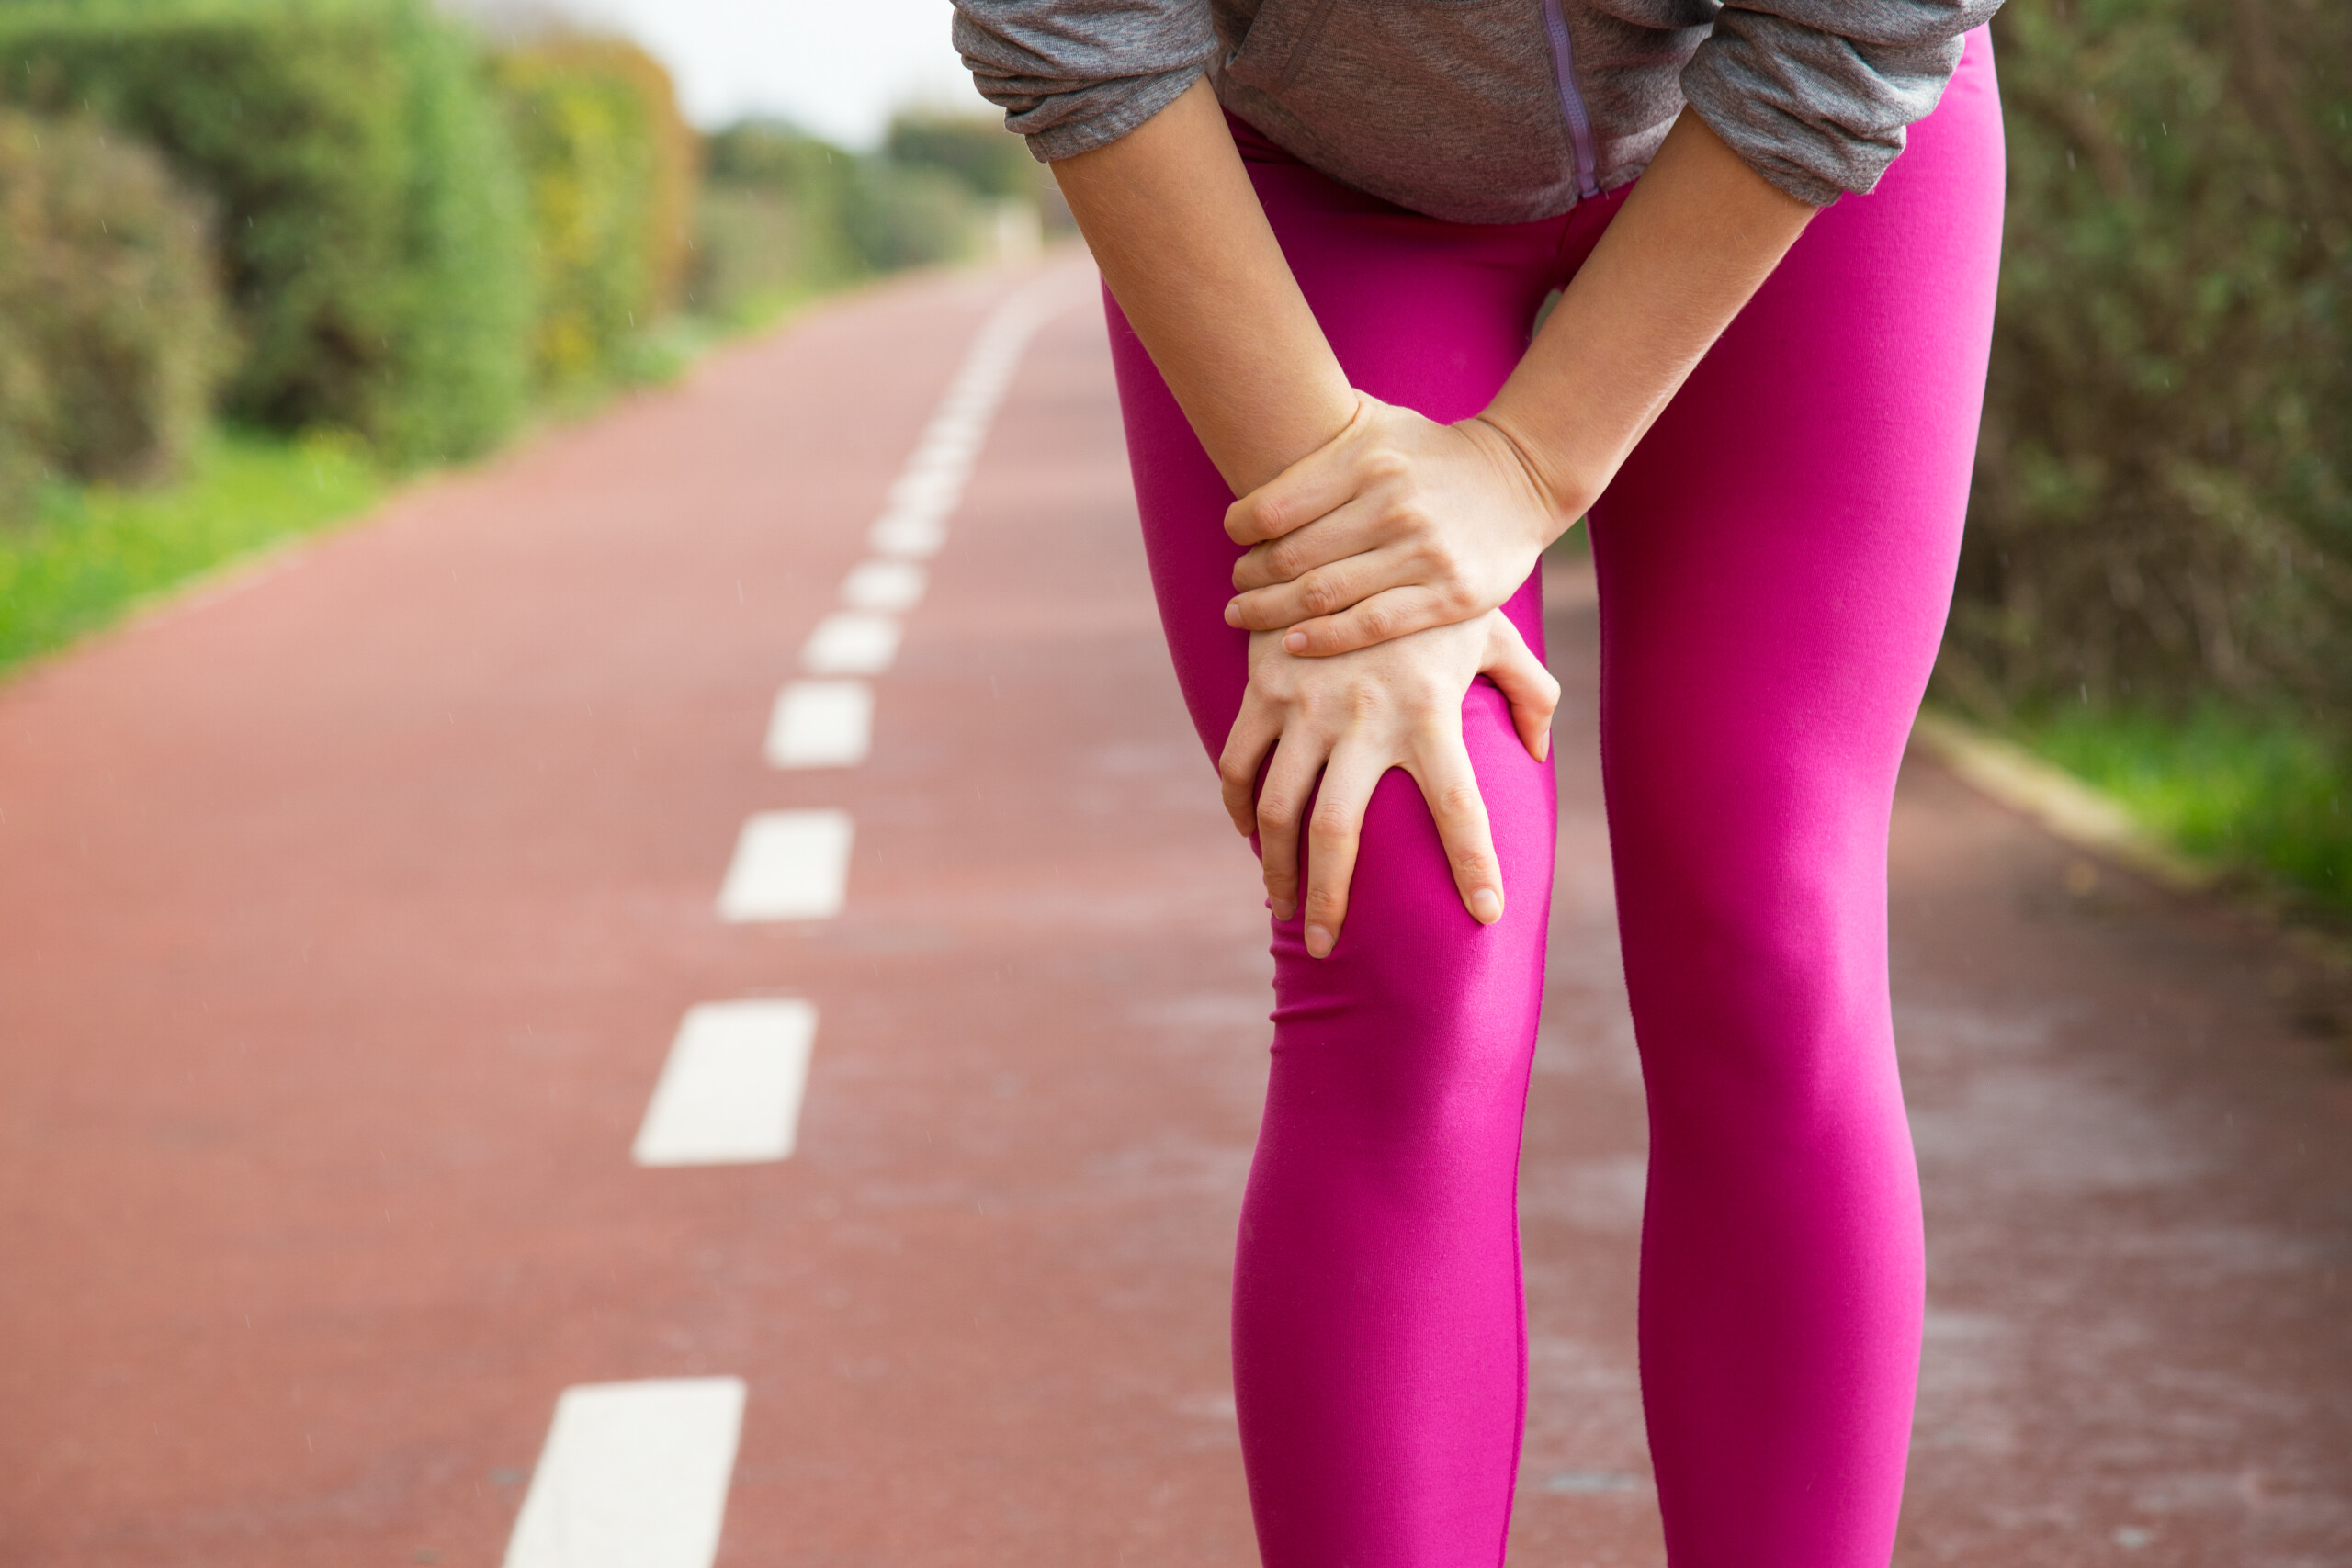 How Long Does It Take to Heal a Pulled Quad Muscle?